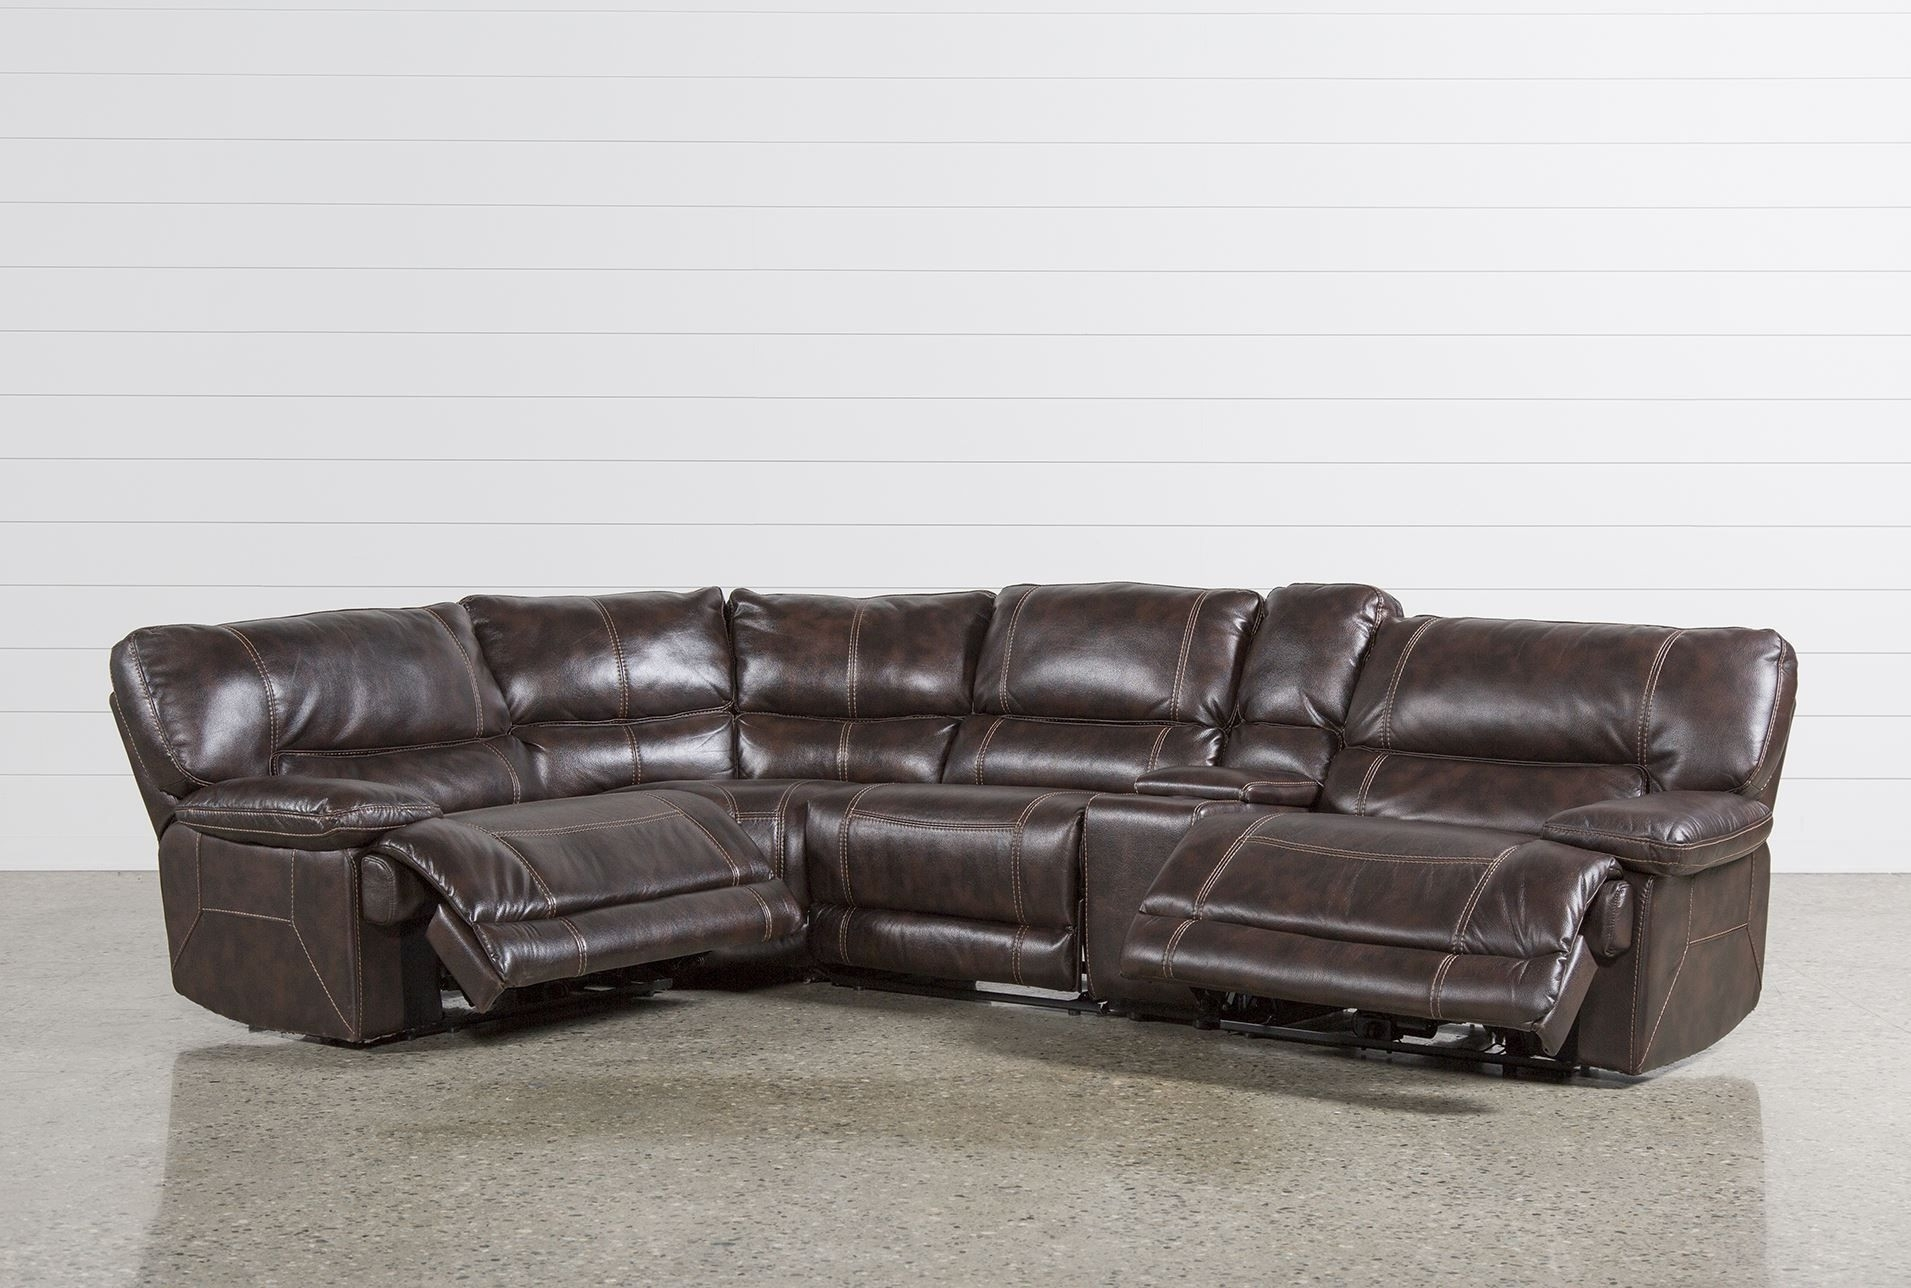 Living Spaces Sectional – Tidex Inside Sierra Down 3 Piece Sectionals With Laf Chaise (Image 16 of 25)